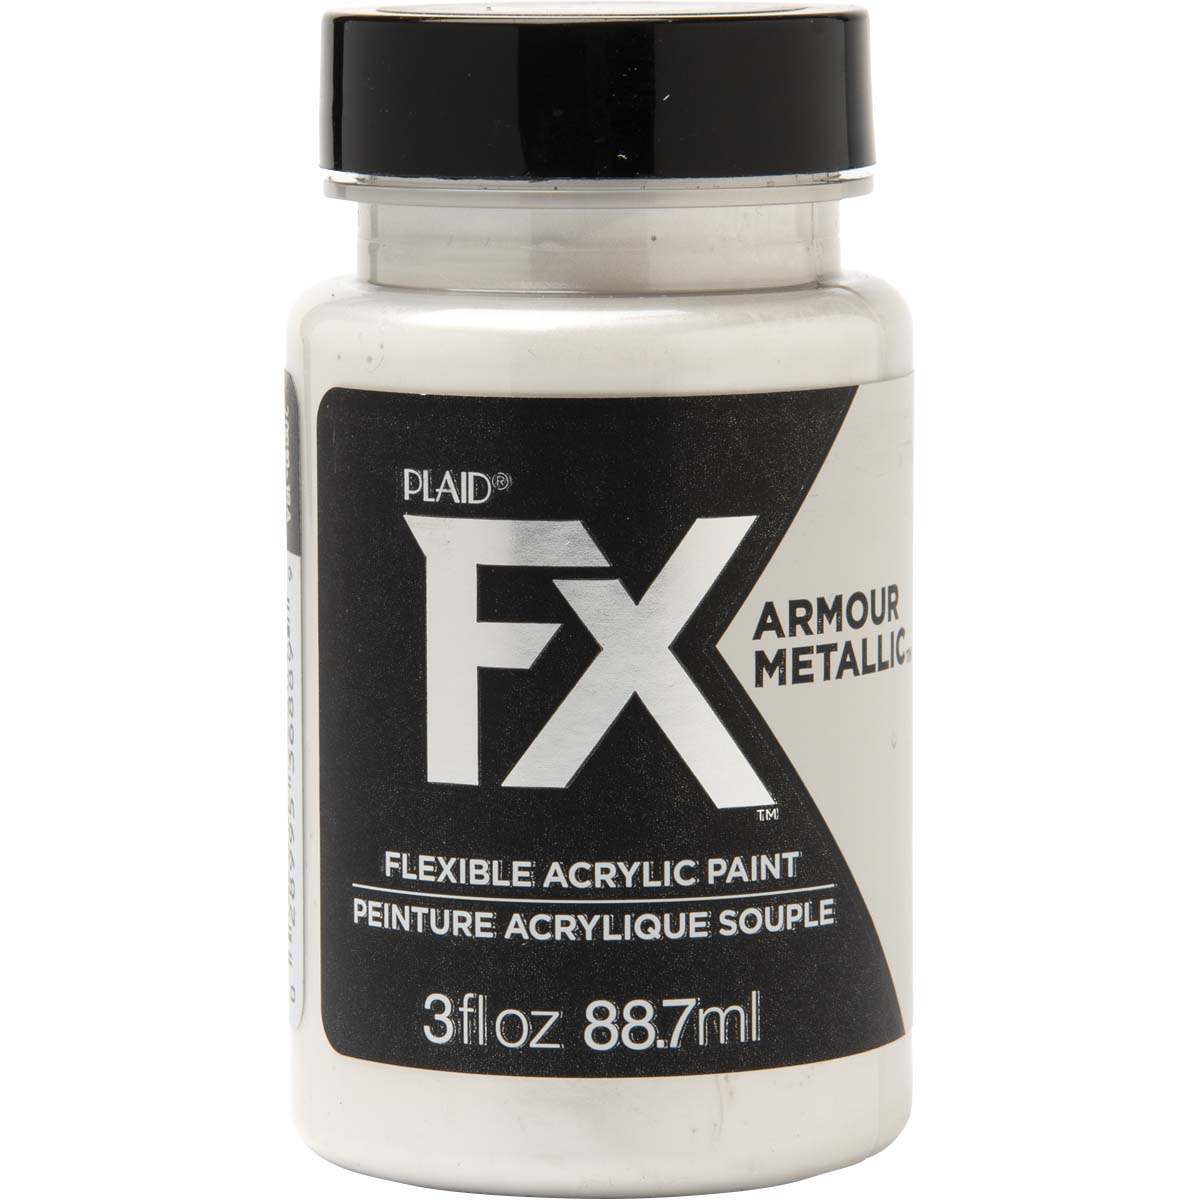 PlaidFX Armour Metal Flexible Acrylic Paint - New Liberty, 3 oz. - 36889